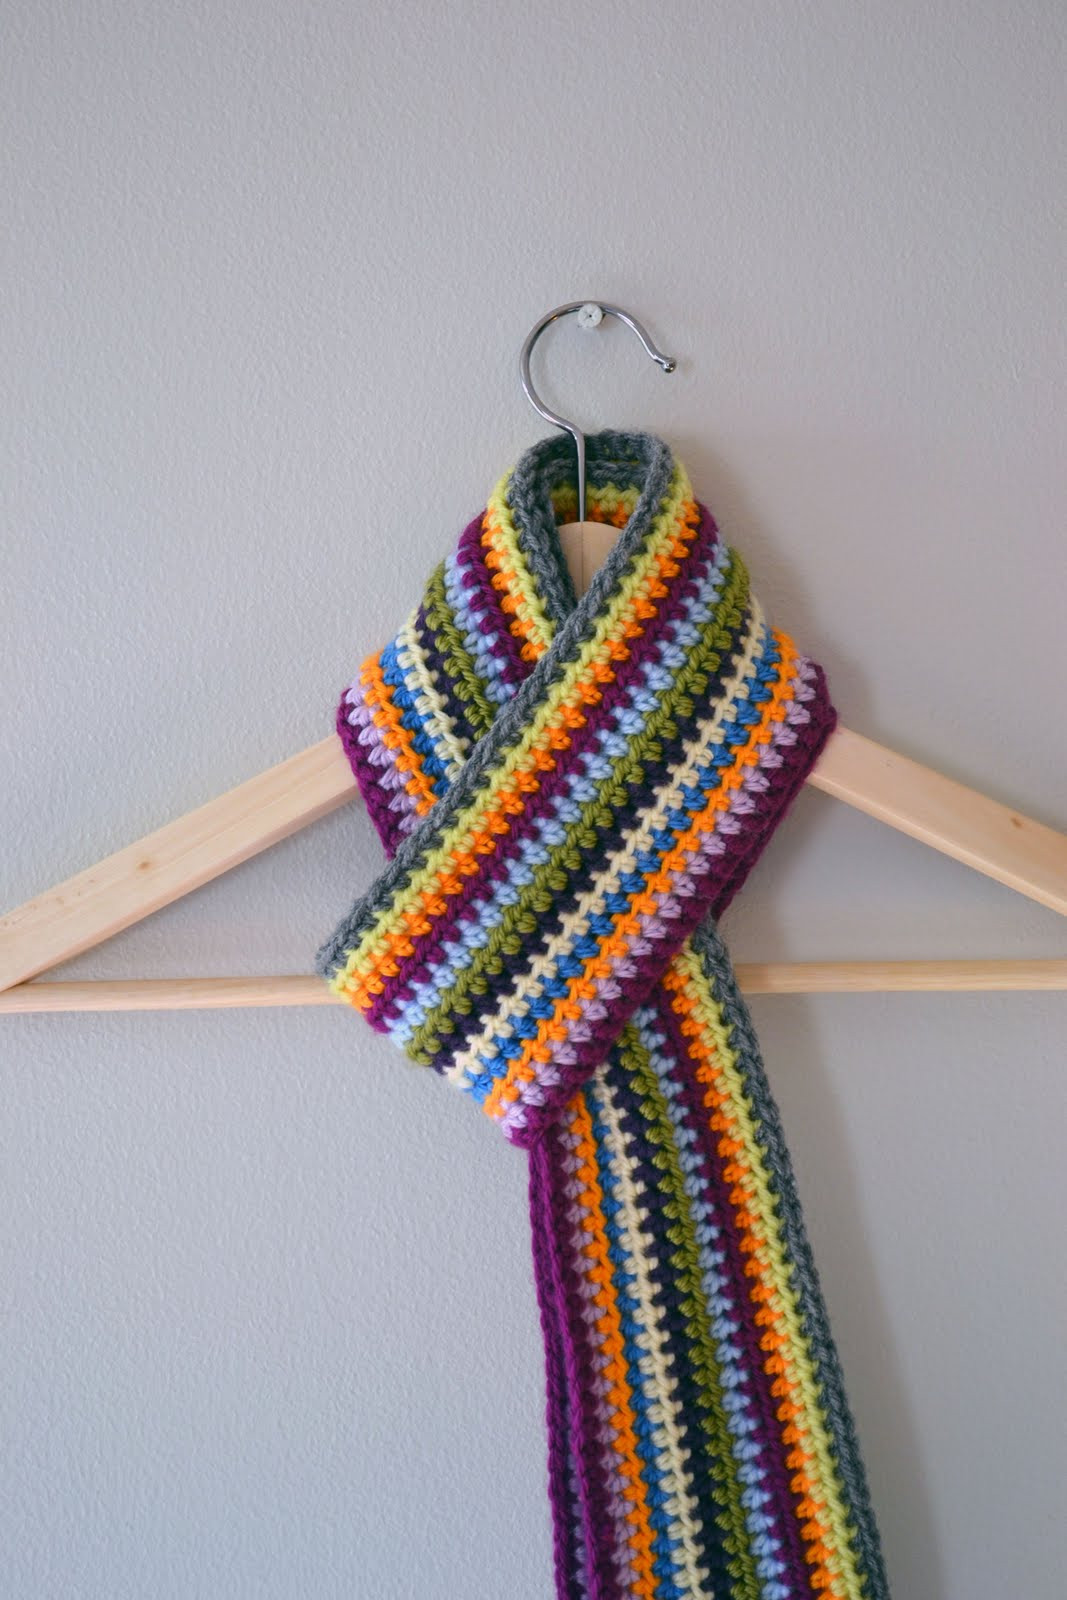 Crochet Scarf New Crochet In Color Scrapadelic Scarf Of Incredible 48 Images Crochet Scarf